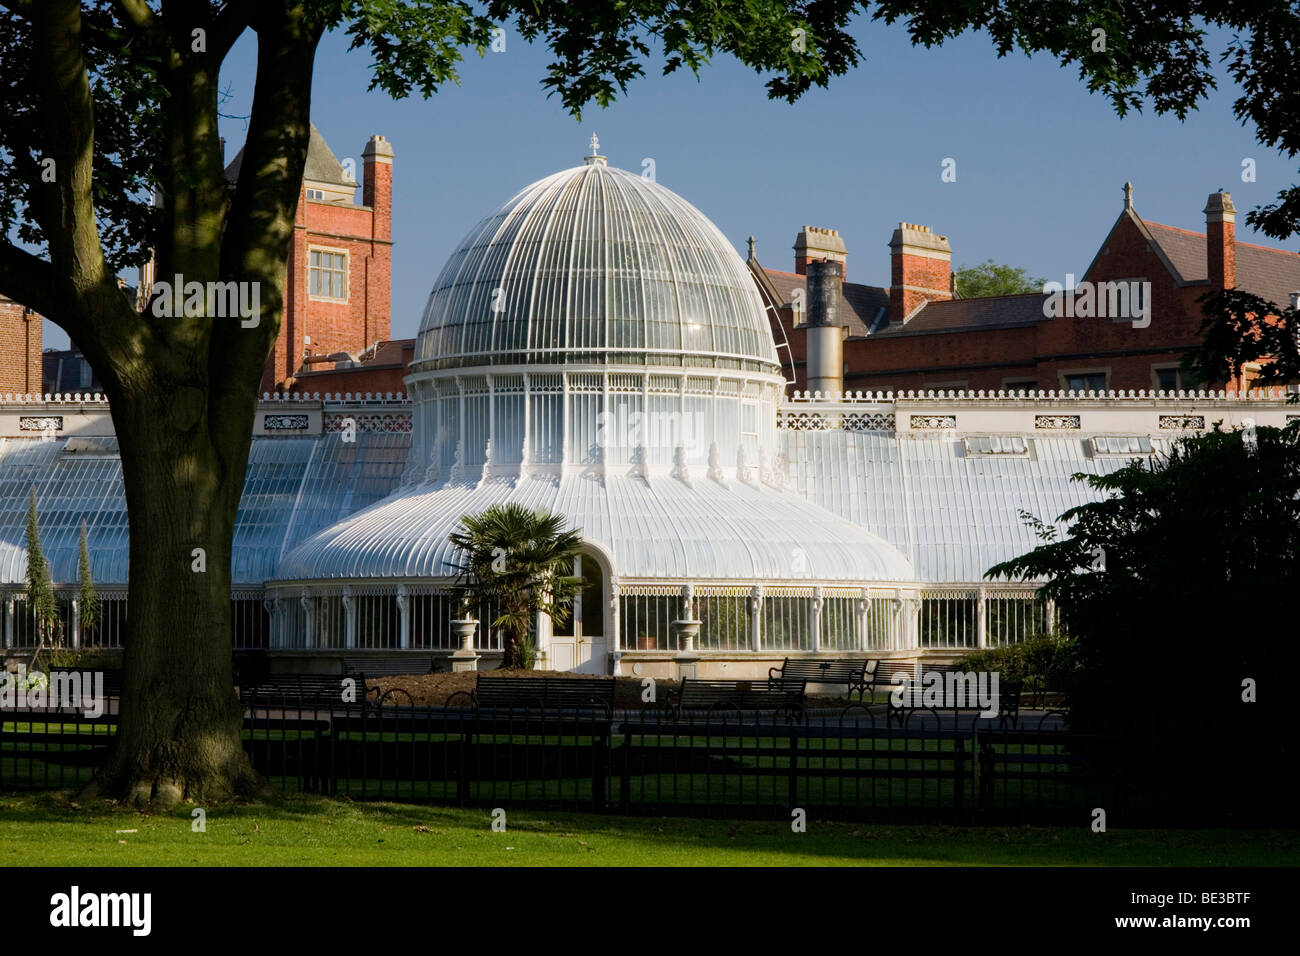 Palm house in the botanic garden of Belfast, County Antrim, Ulster, Northern Ireland, United Kingdom, Europe - Stock Image